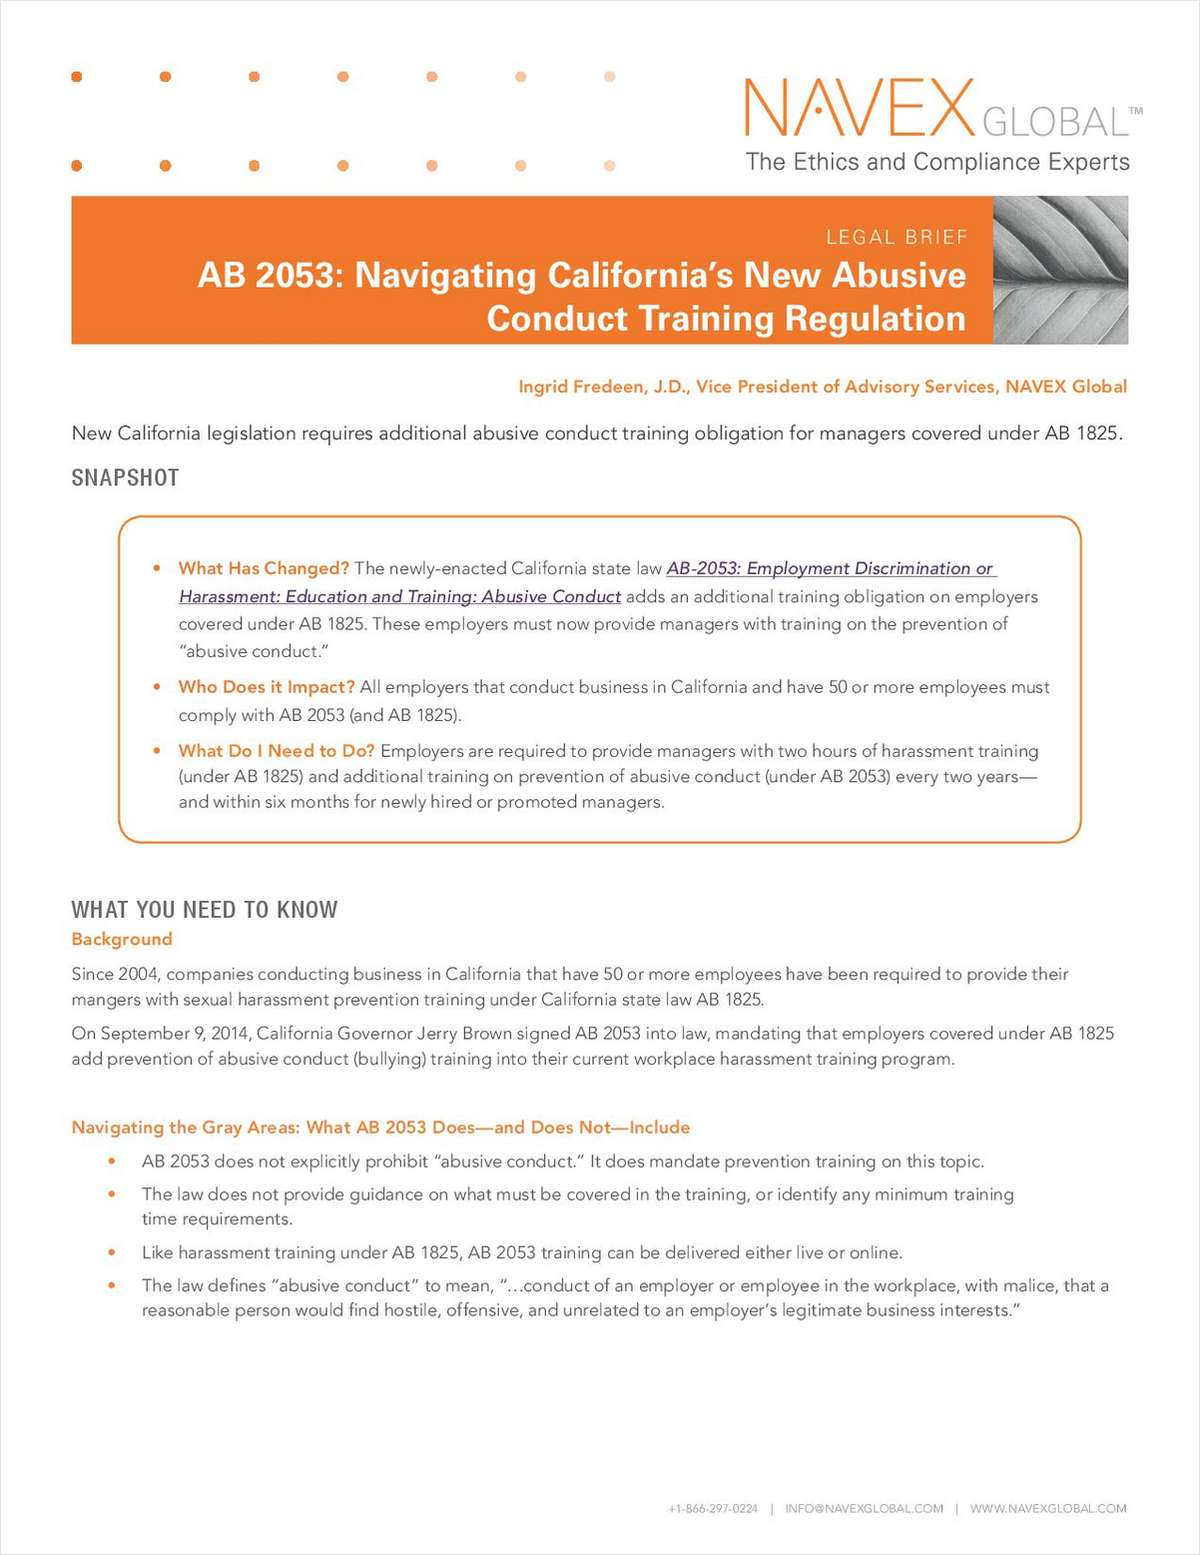 How to Navigate California's New Abusive Conduct Training Regulation (AB 2053)